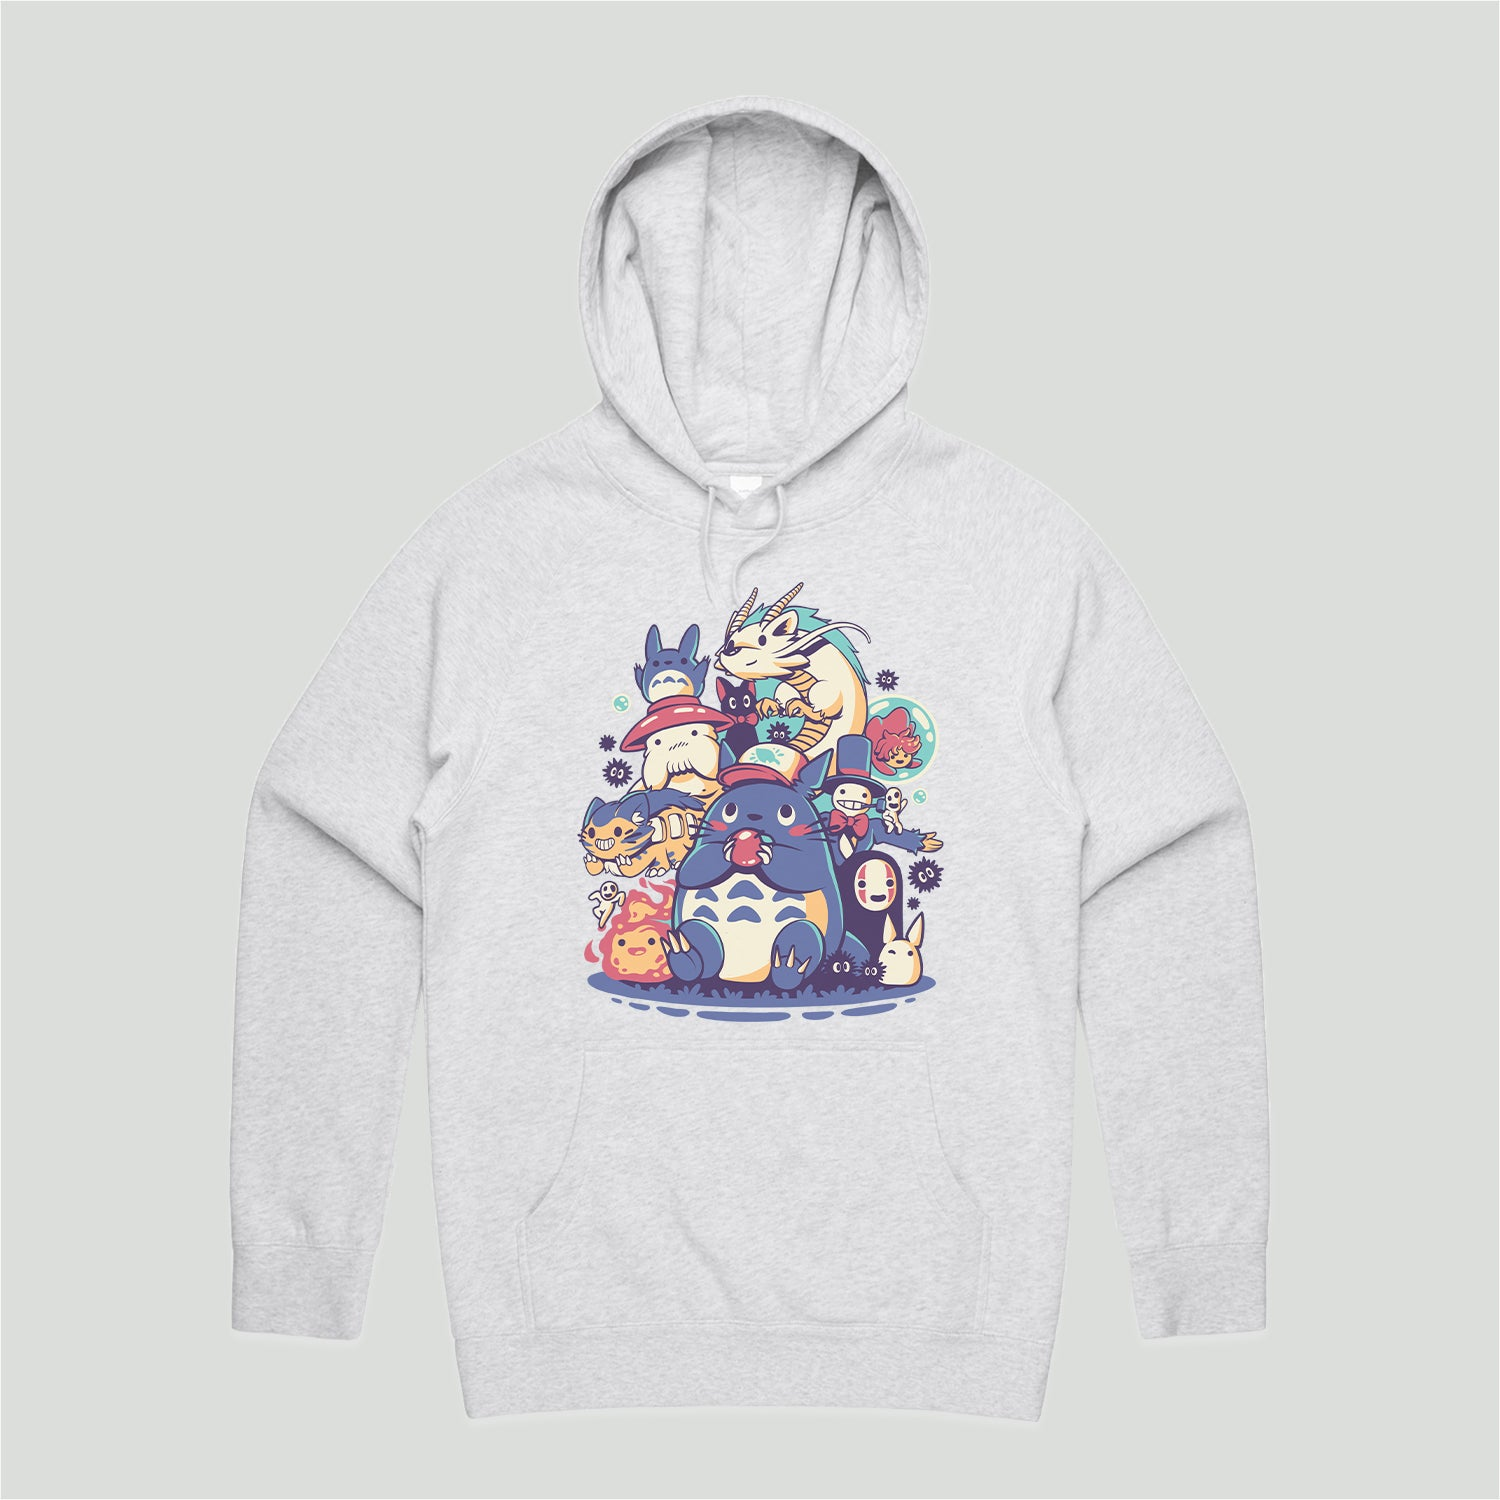 Creatures, Spirits and Friends Hoodie